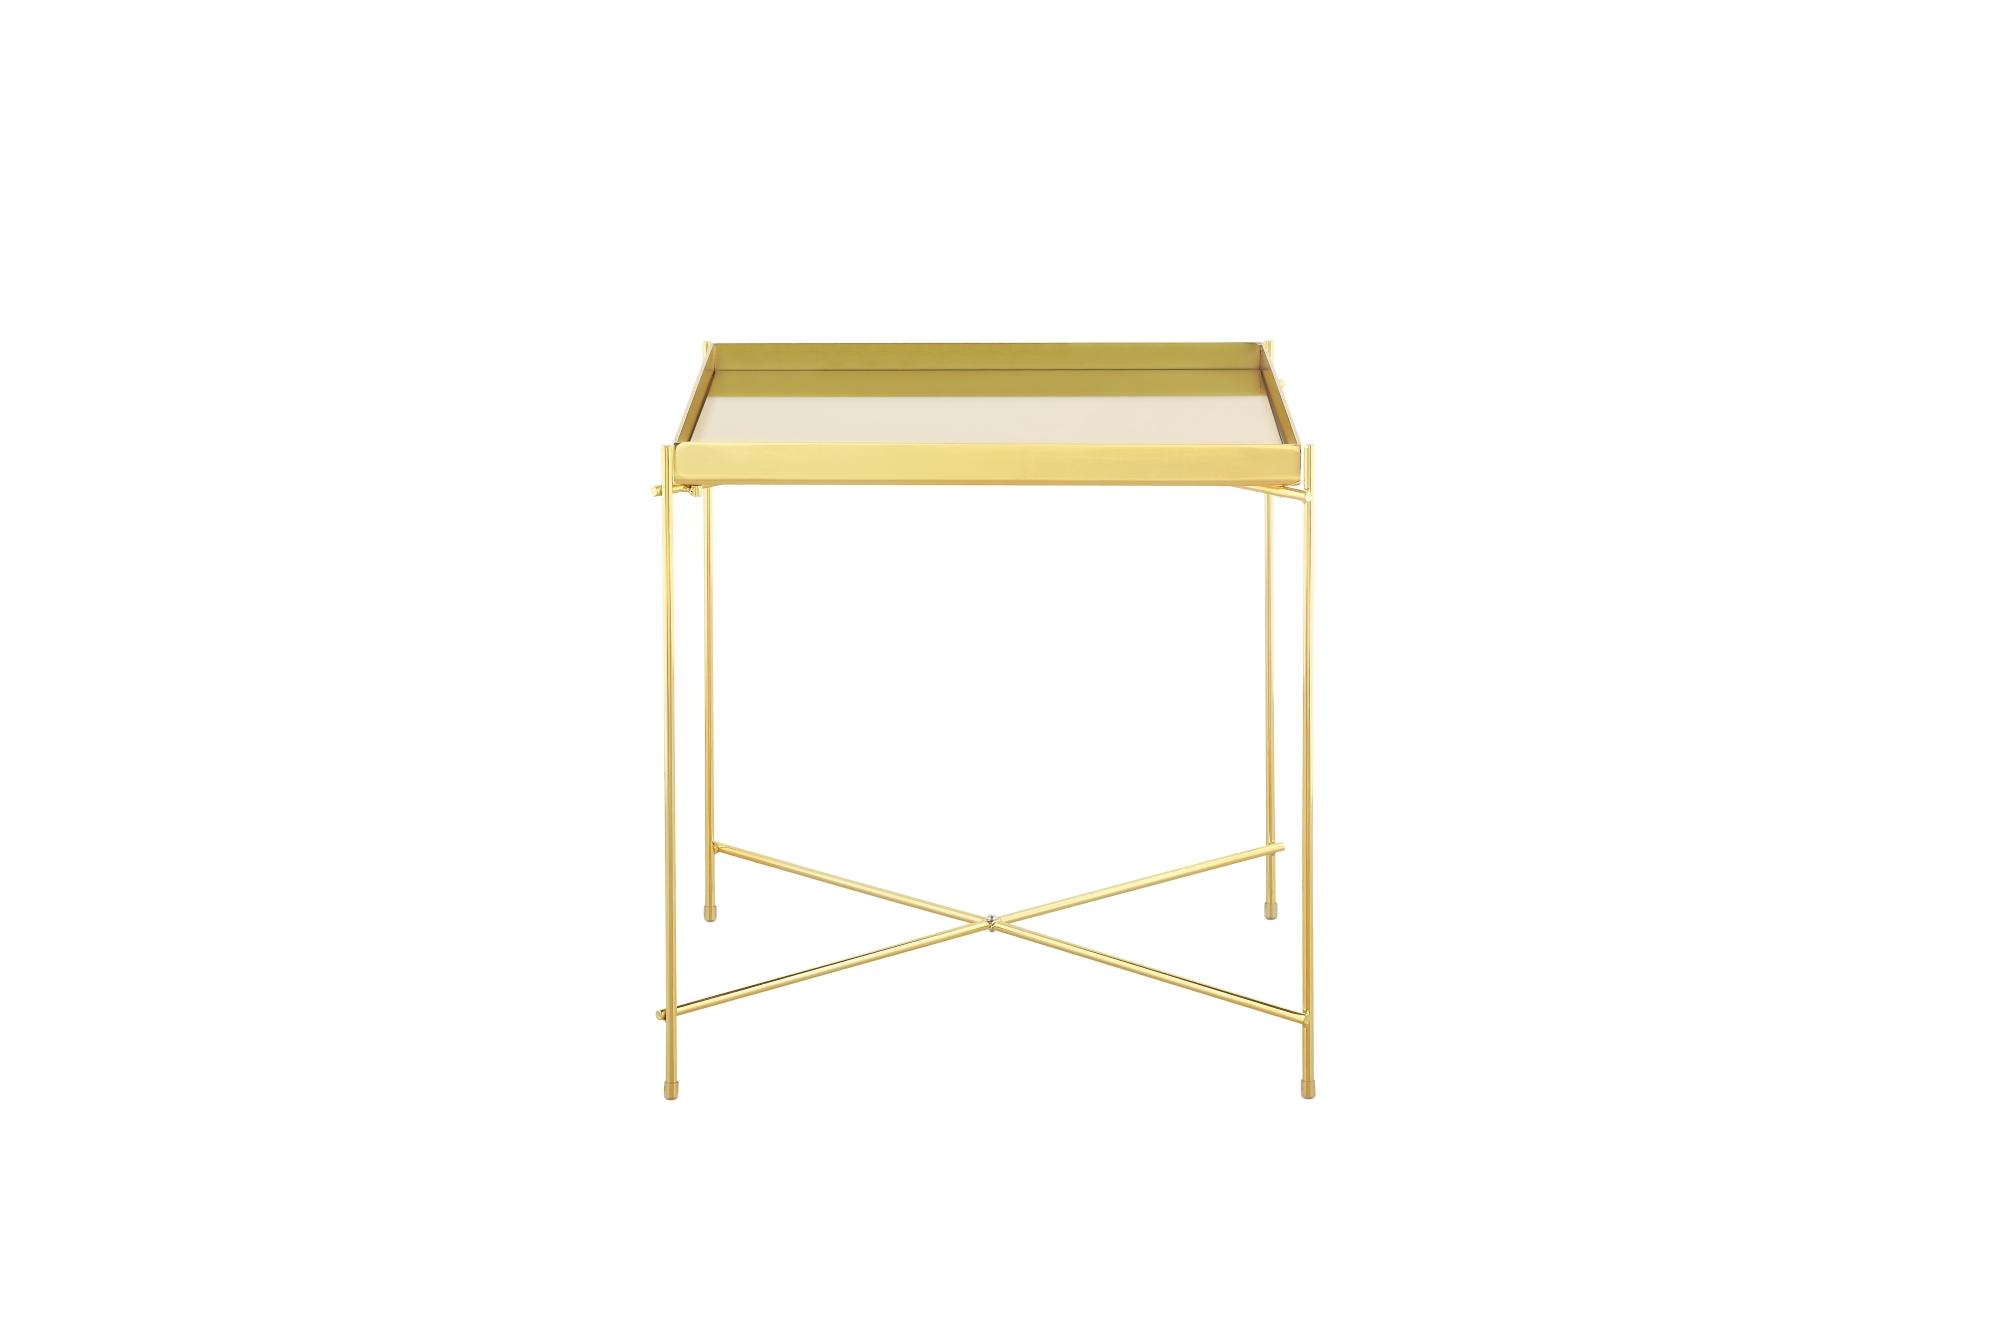 Oakland Gold Metal Mirror Side Table - Square